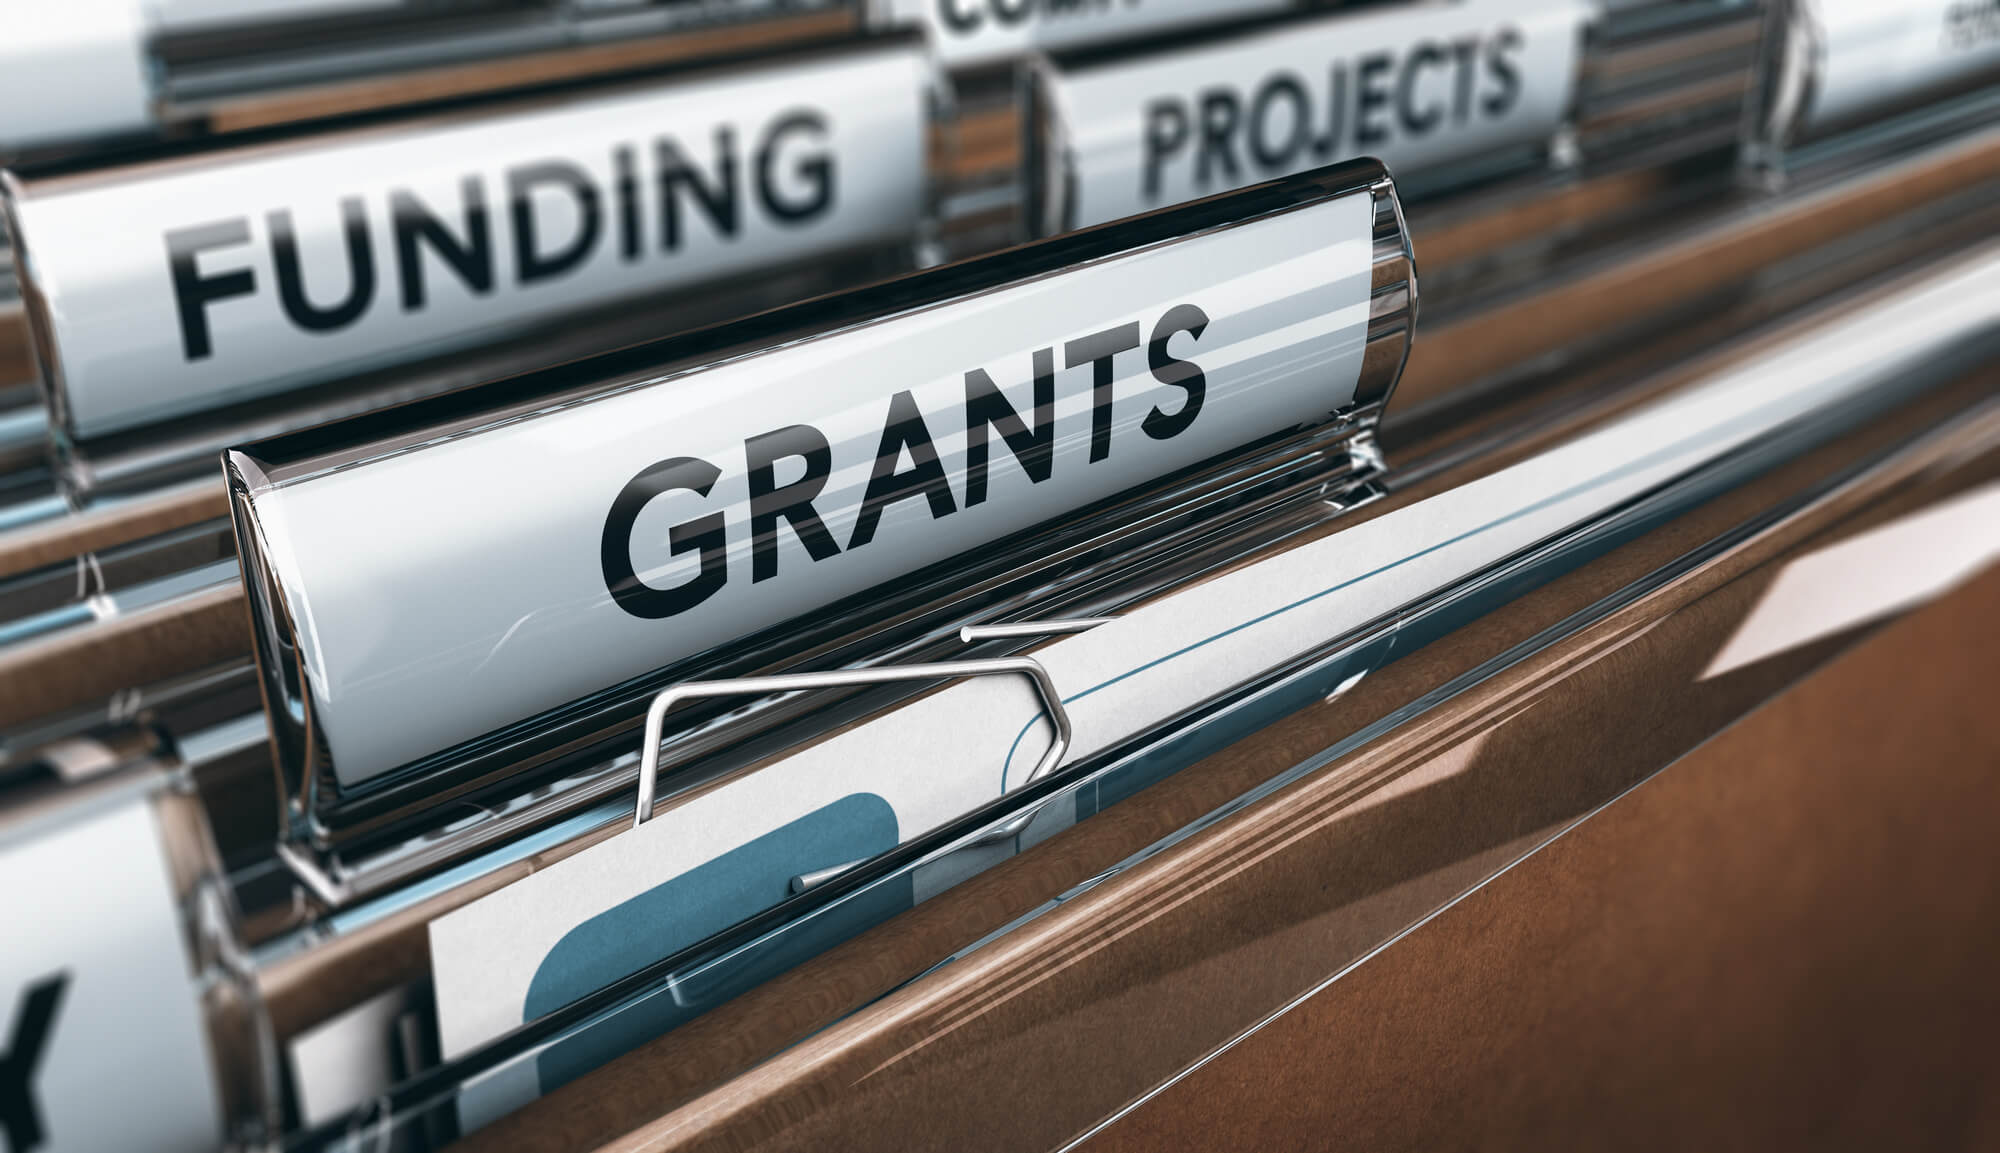 small business grants ontario application